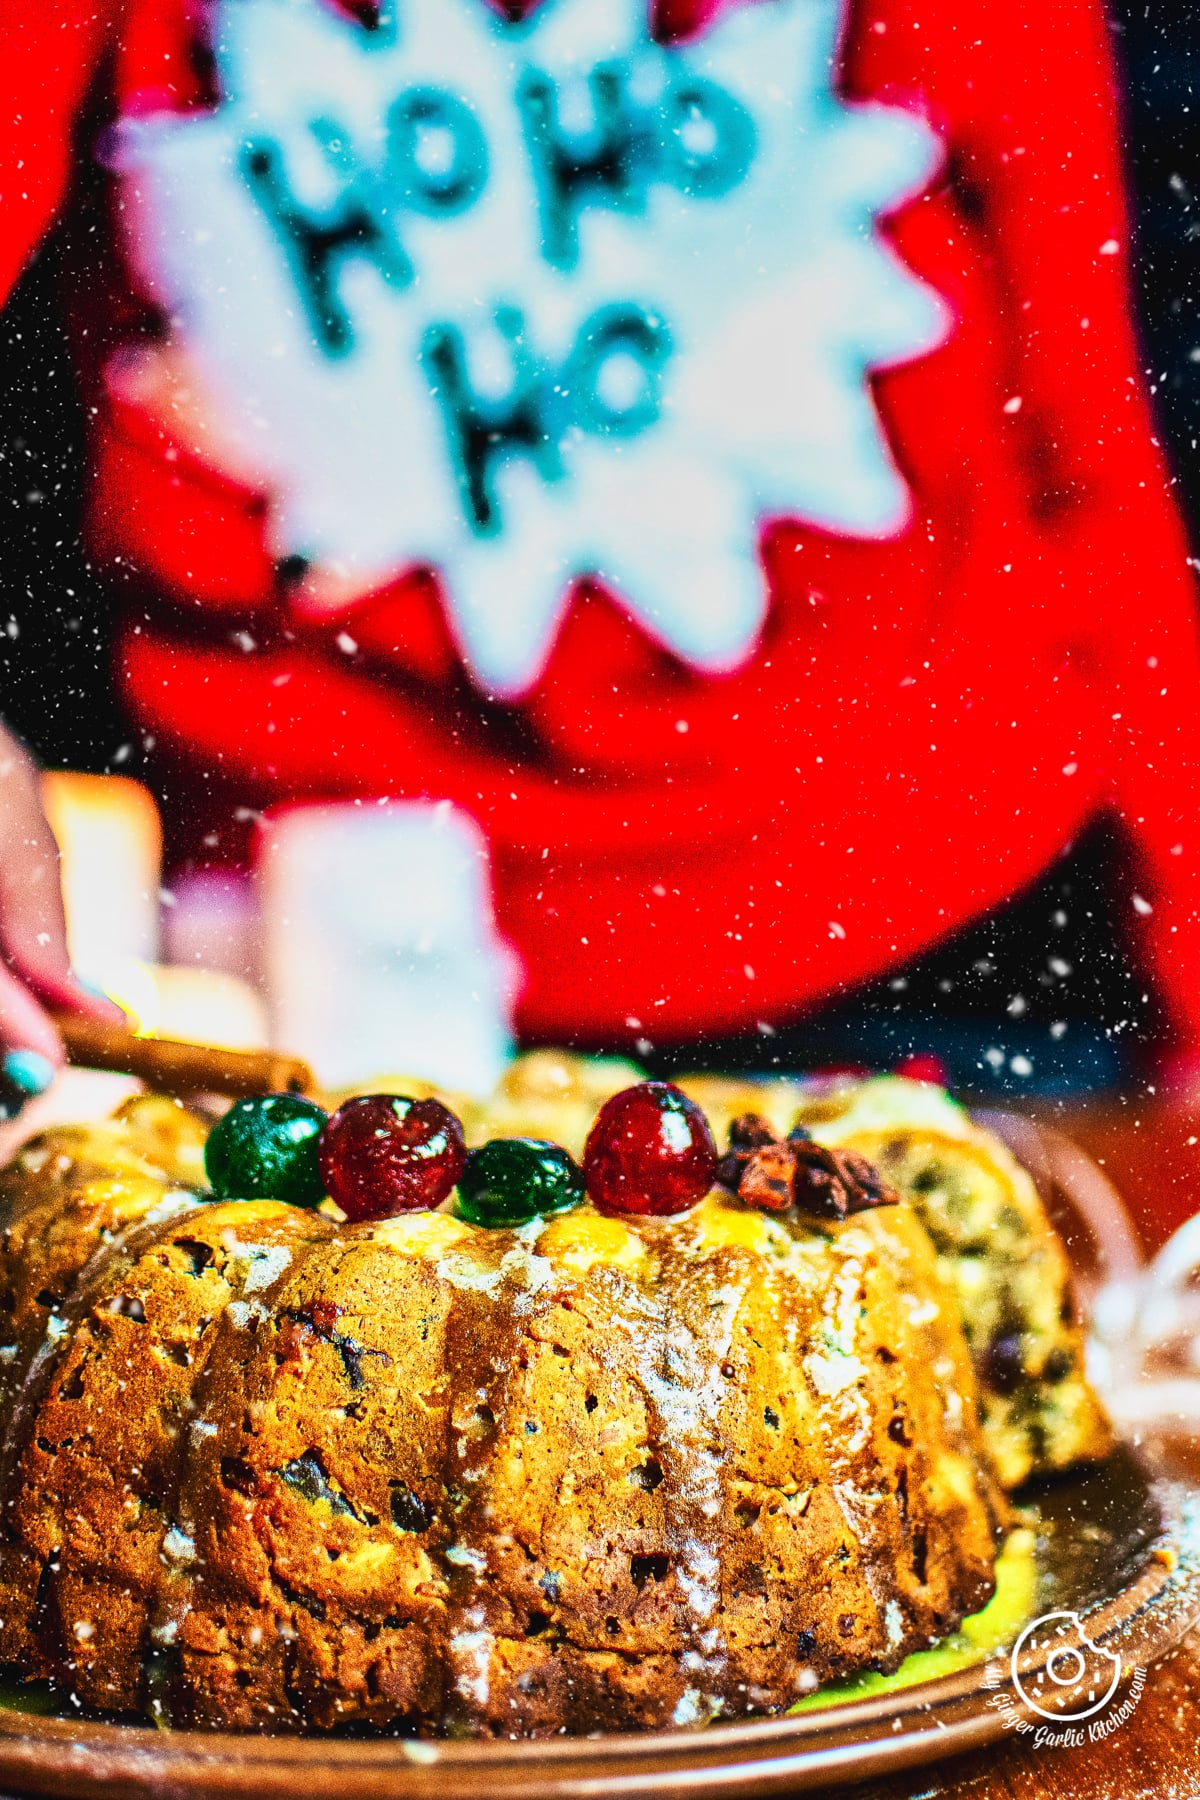 a person decorating a fruit cake